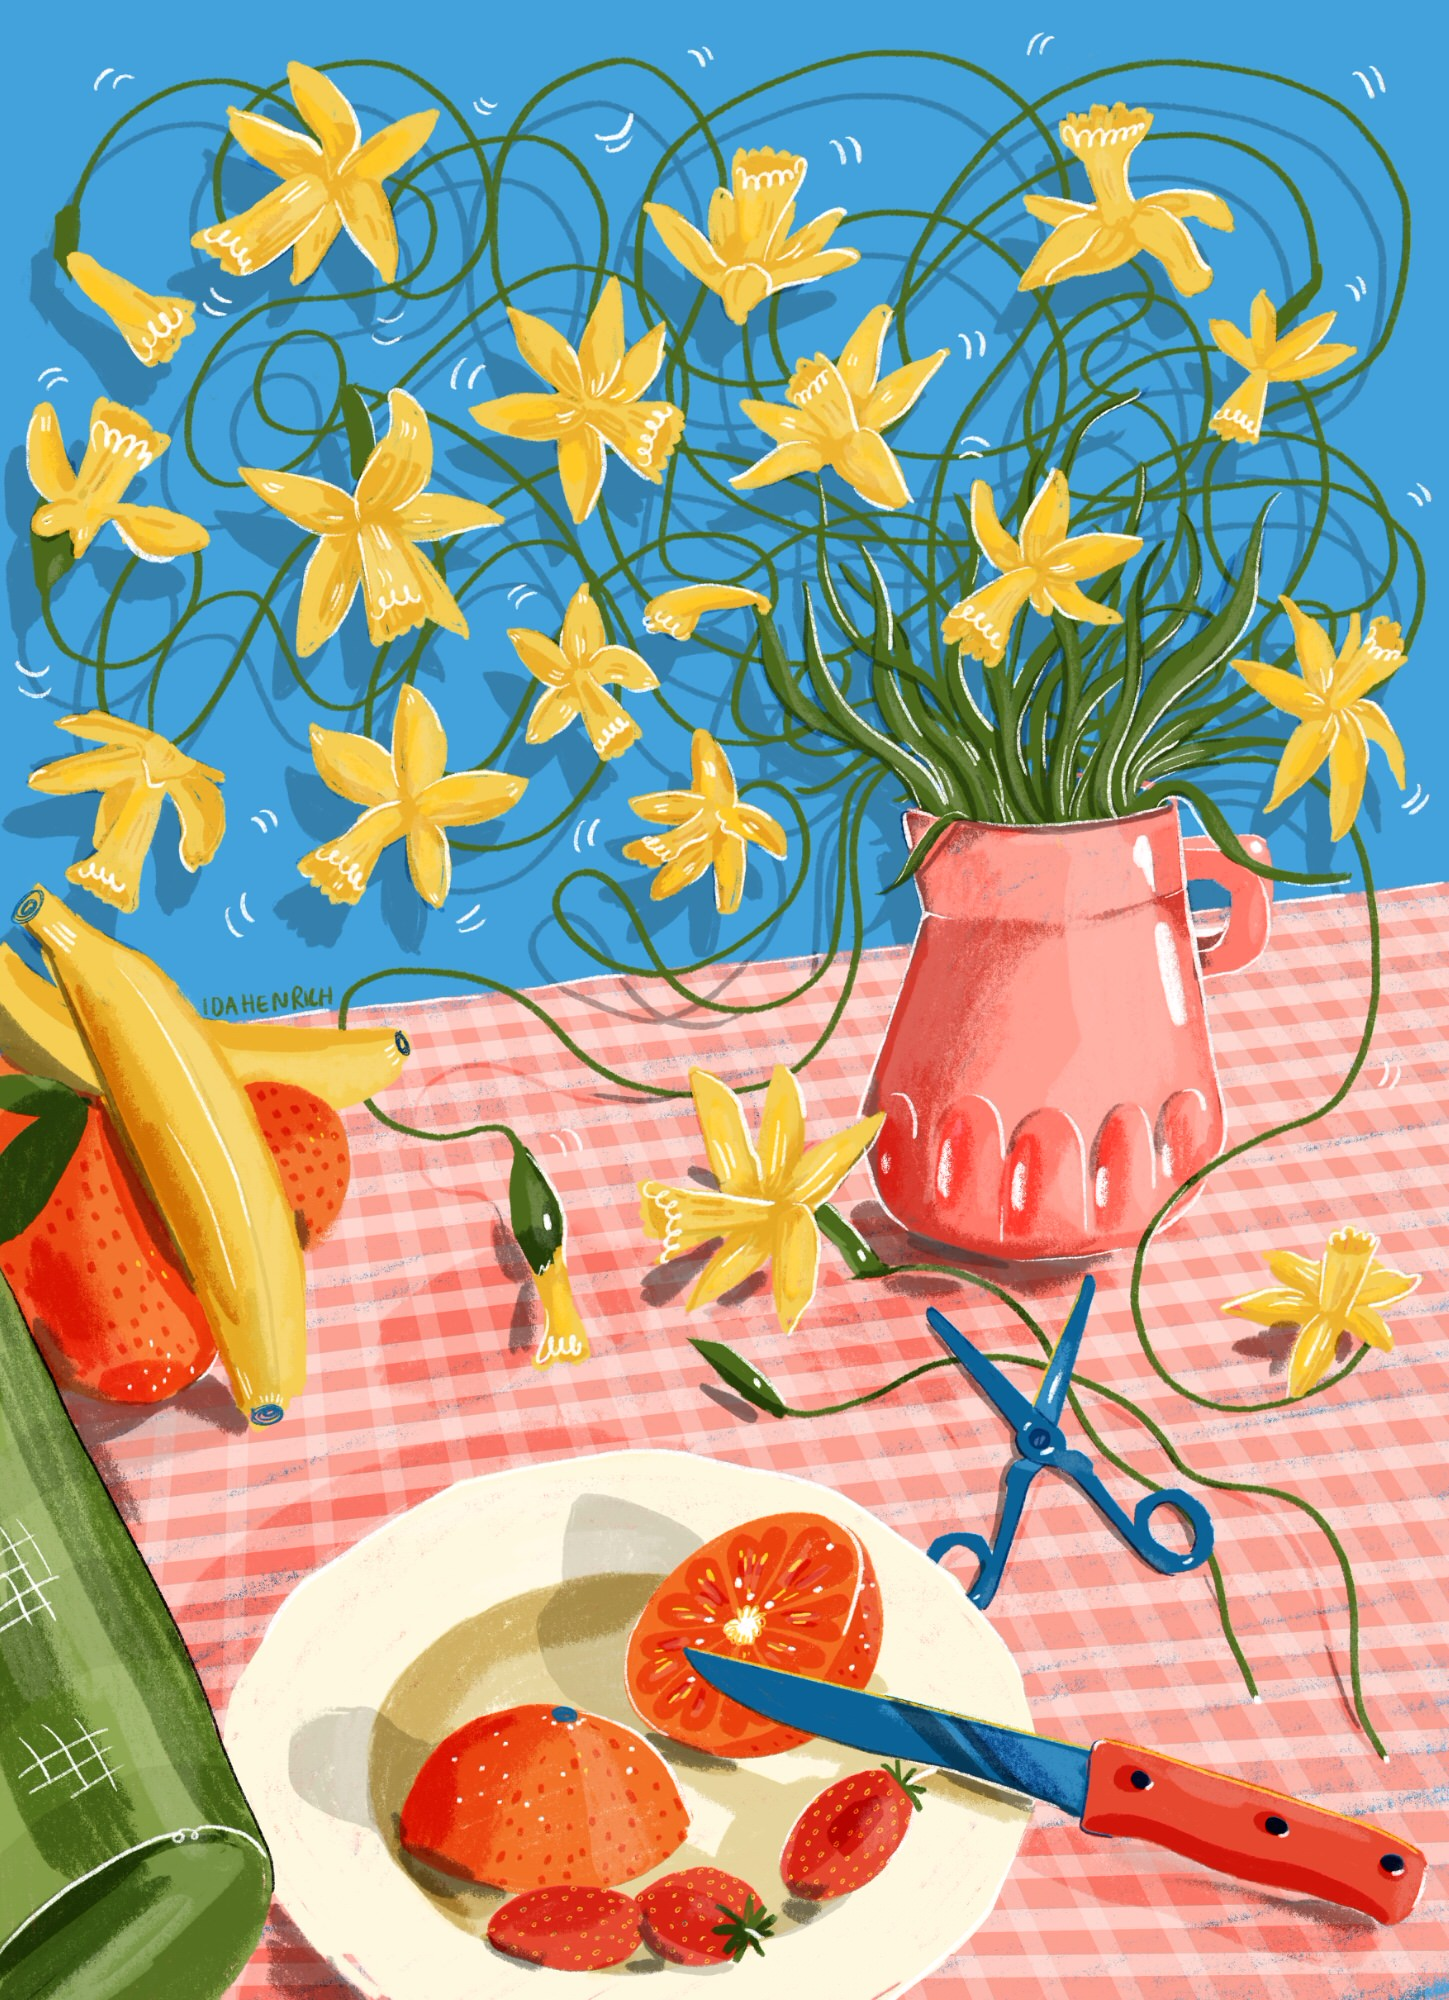 Image shows a kitchen table with wild daffodils and fruit. Image by Ida Henrich